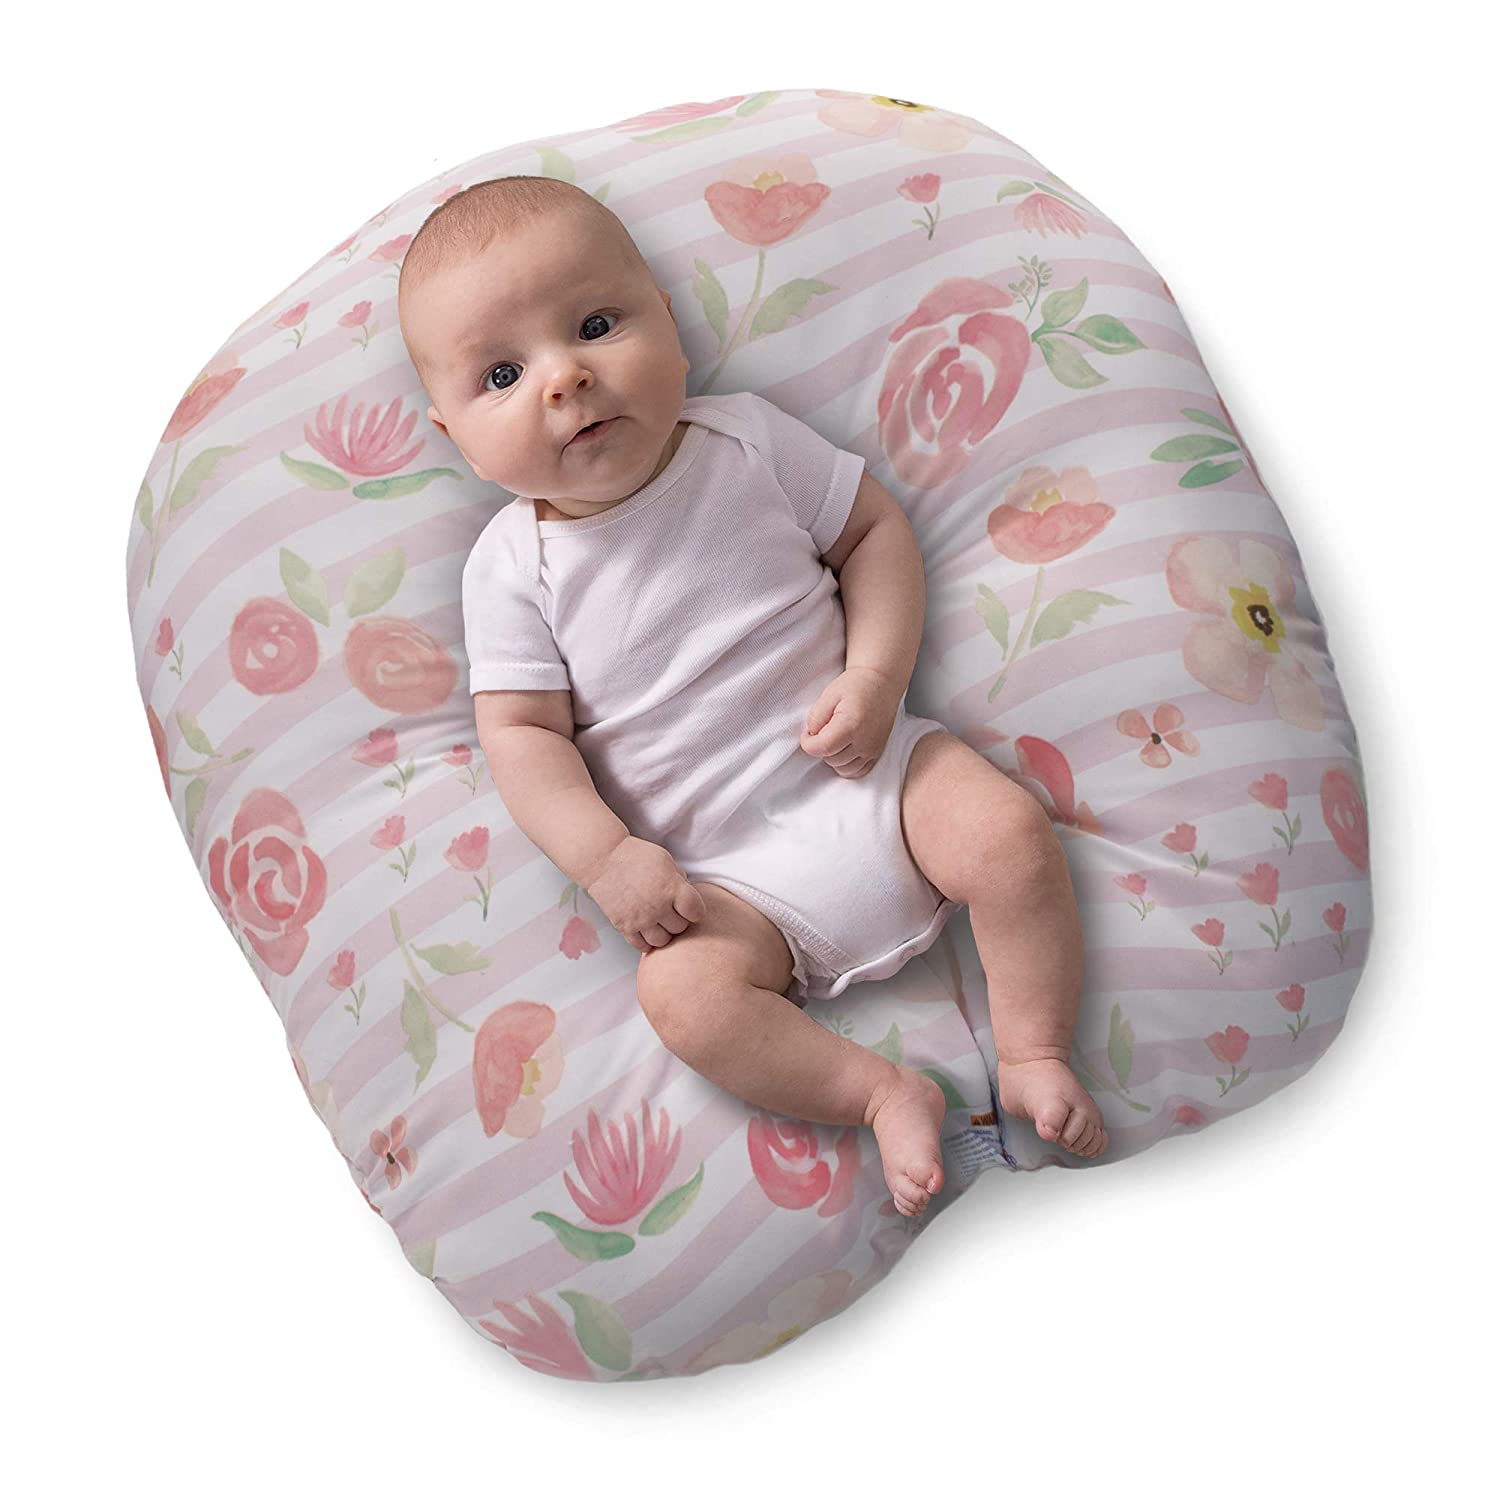 Boppy Newborn Lounger, Big Blooms The Boppy Company 4300718K AMZ